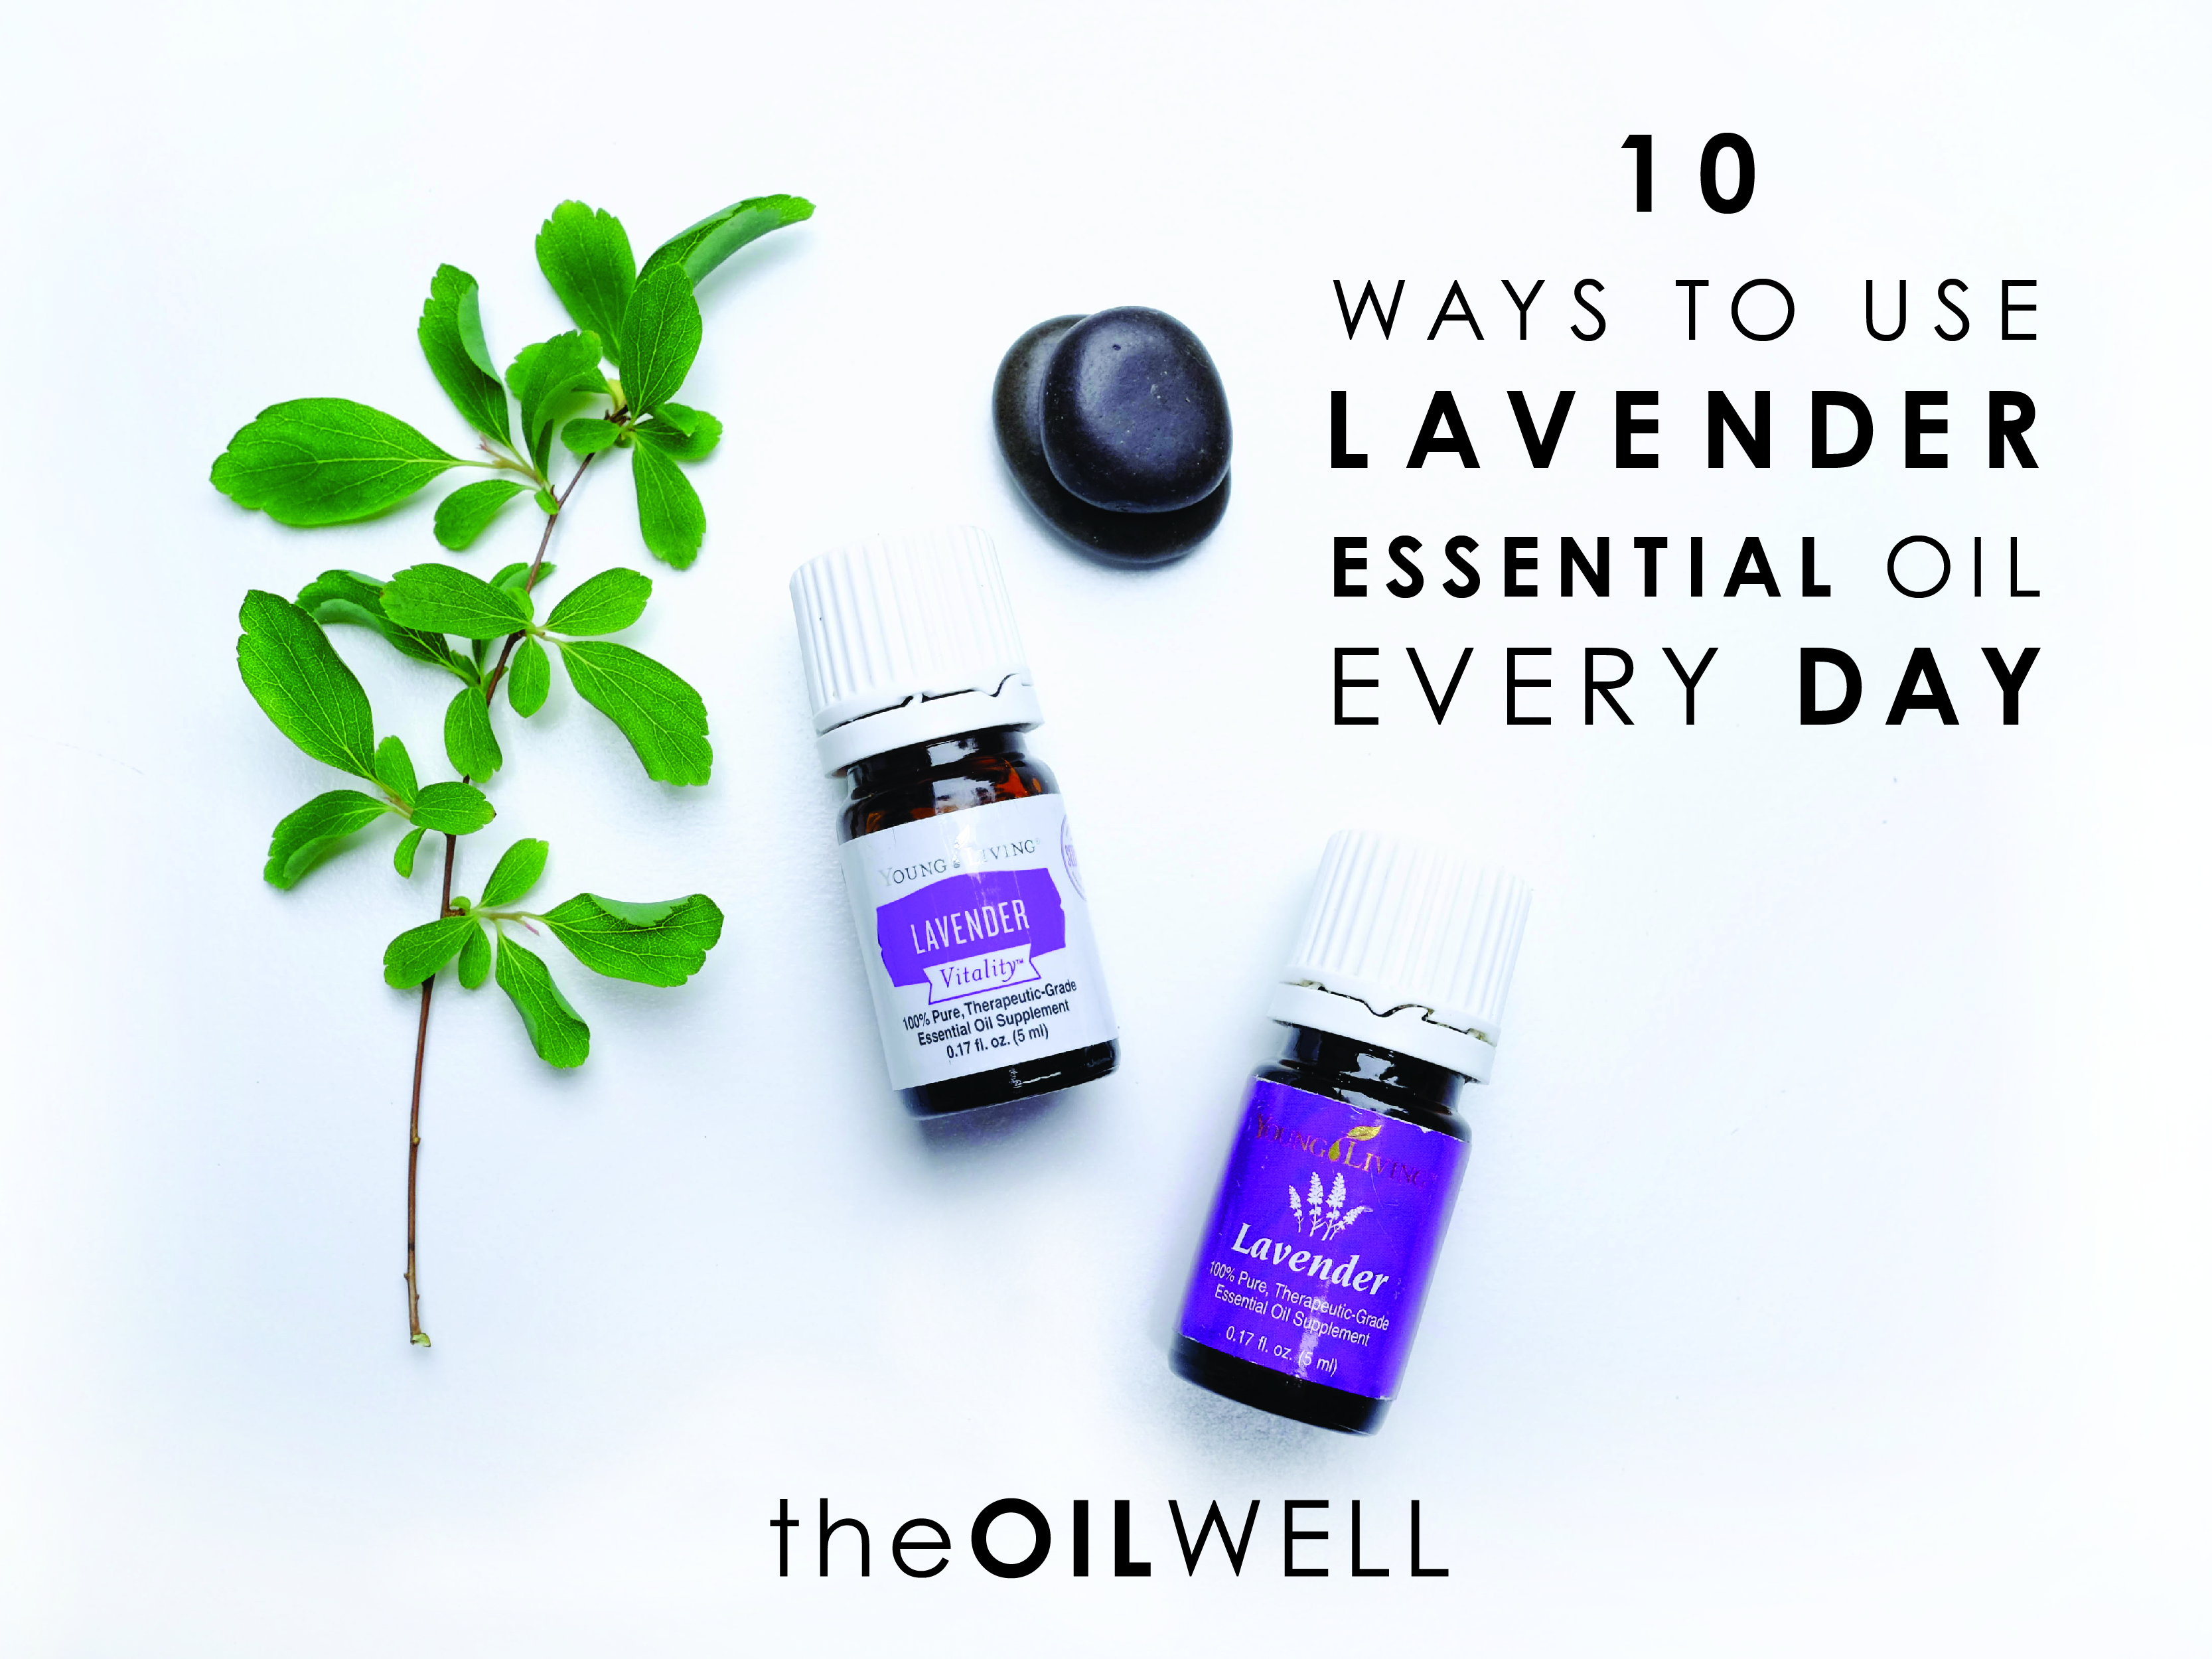 10 Ways to Use Lavender Essential Oil Everyday